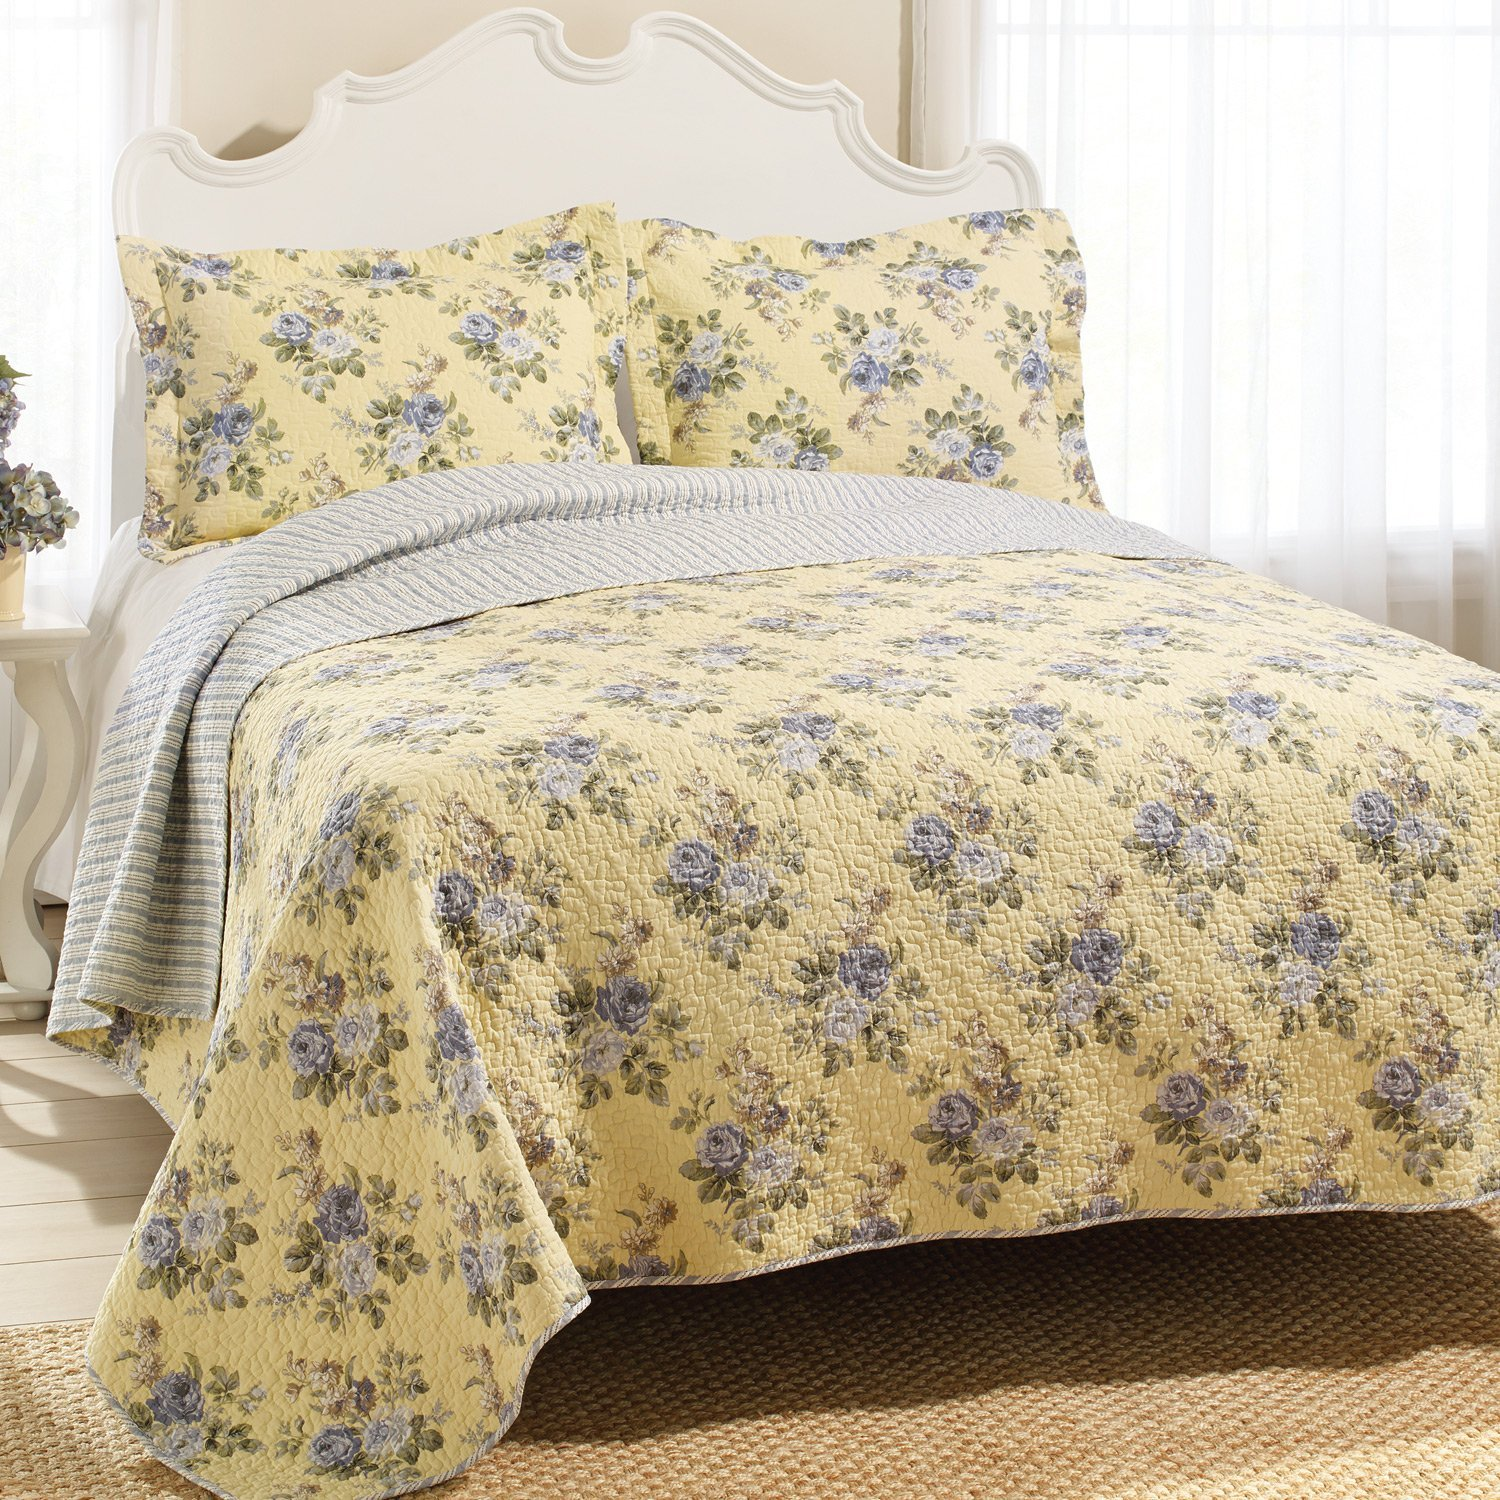 laura ashley bedding in yellow and floral pattern with white headboard on brown rugs matched with wheat wall plus white window plus white curtains for bedroom decor ideas